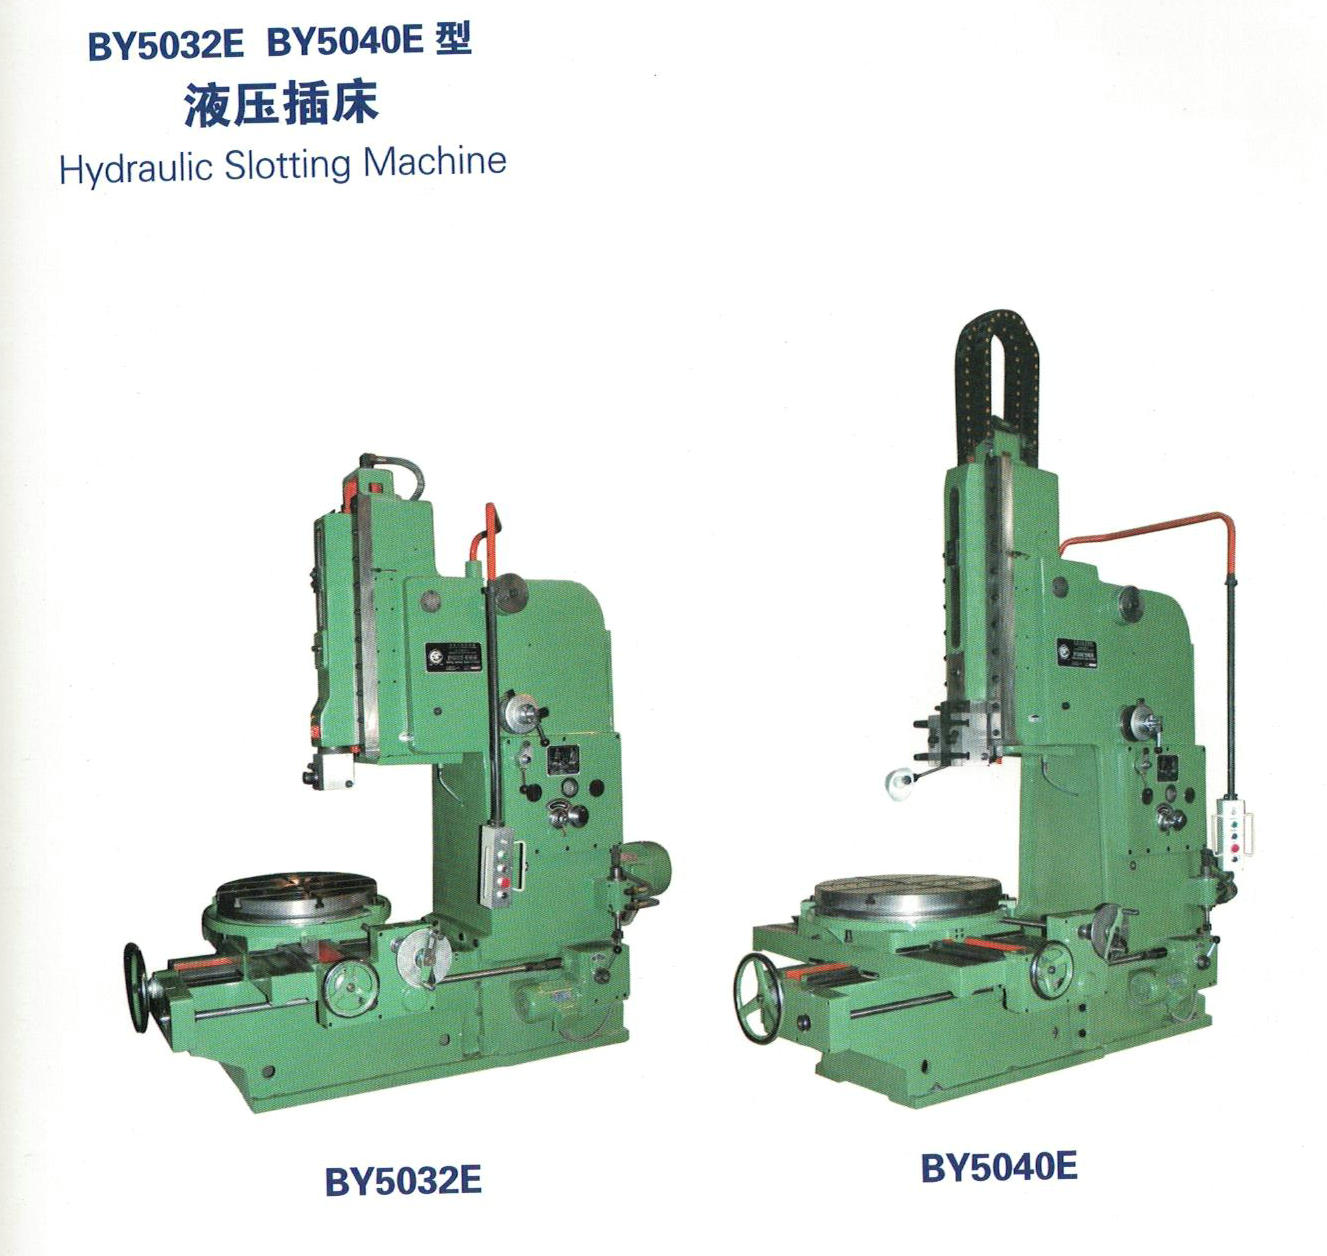 BY5032E-BY5040E HYDRAULIC SLOTTING MACHINE